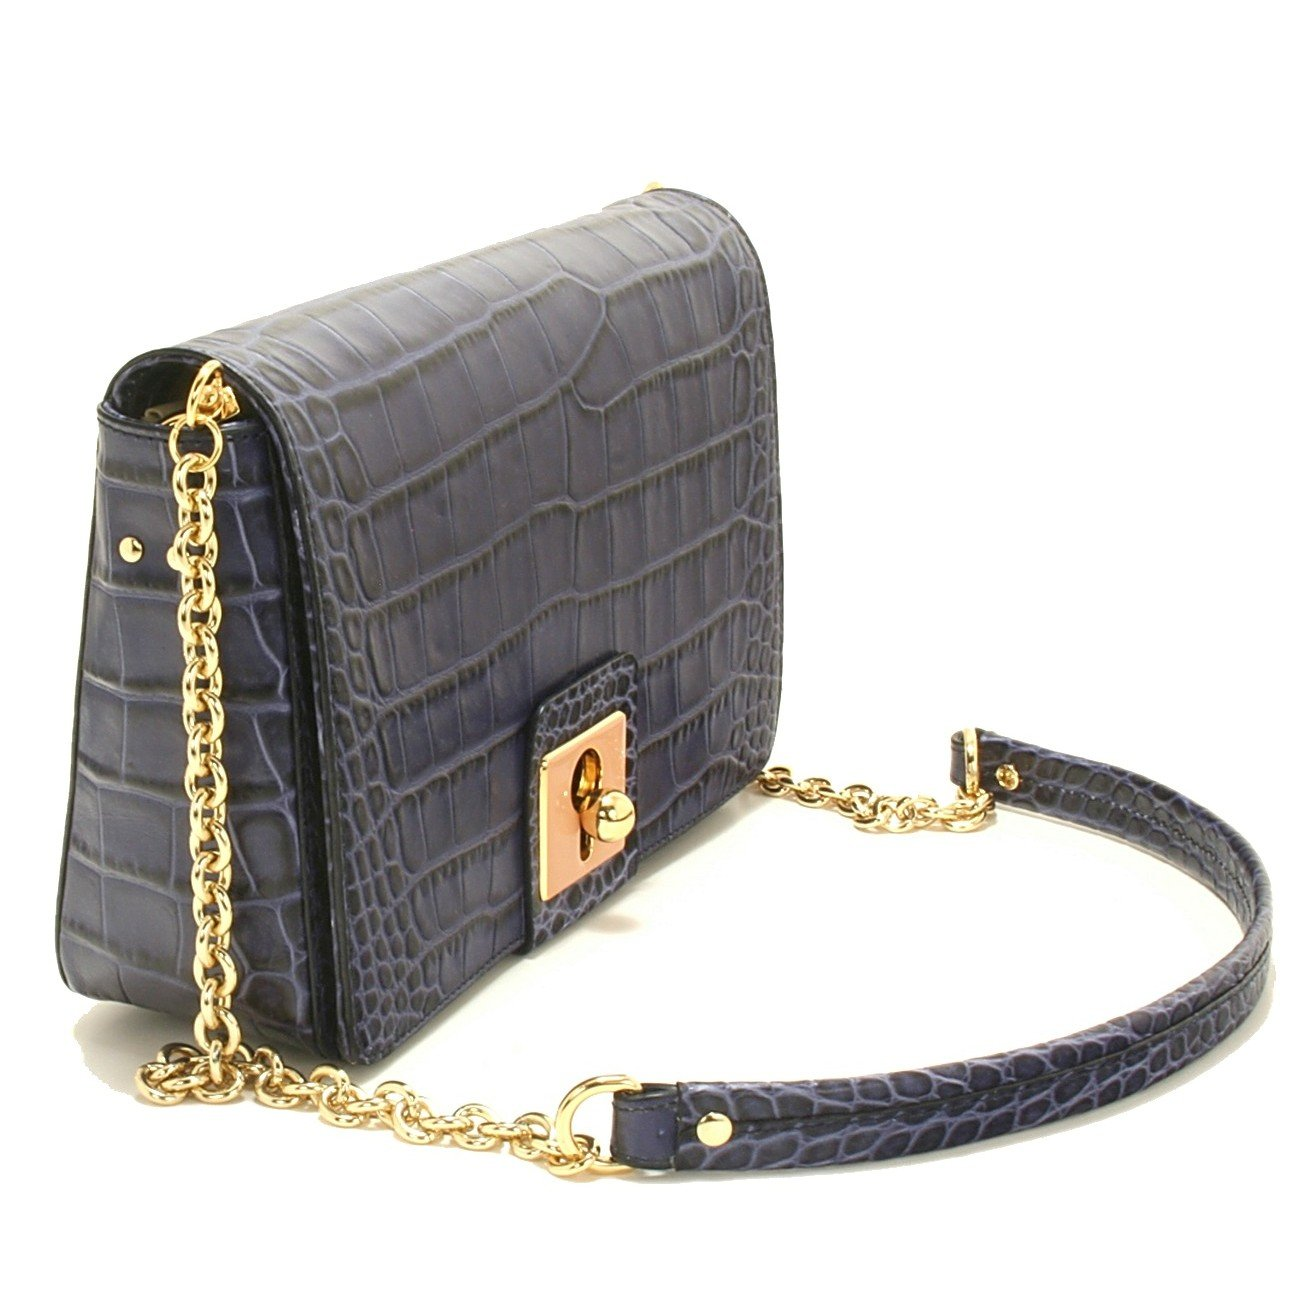 2b8662f9f2 Orla Kiely Croc Embosed Robin Bag, Navy: Handbags: Amazon.com